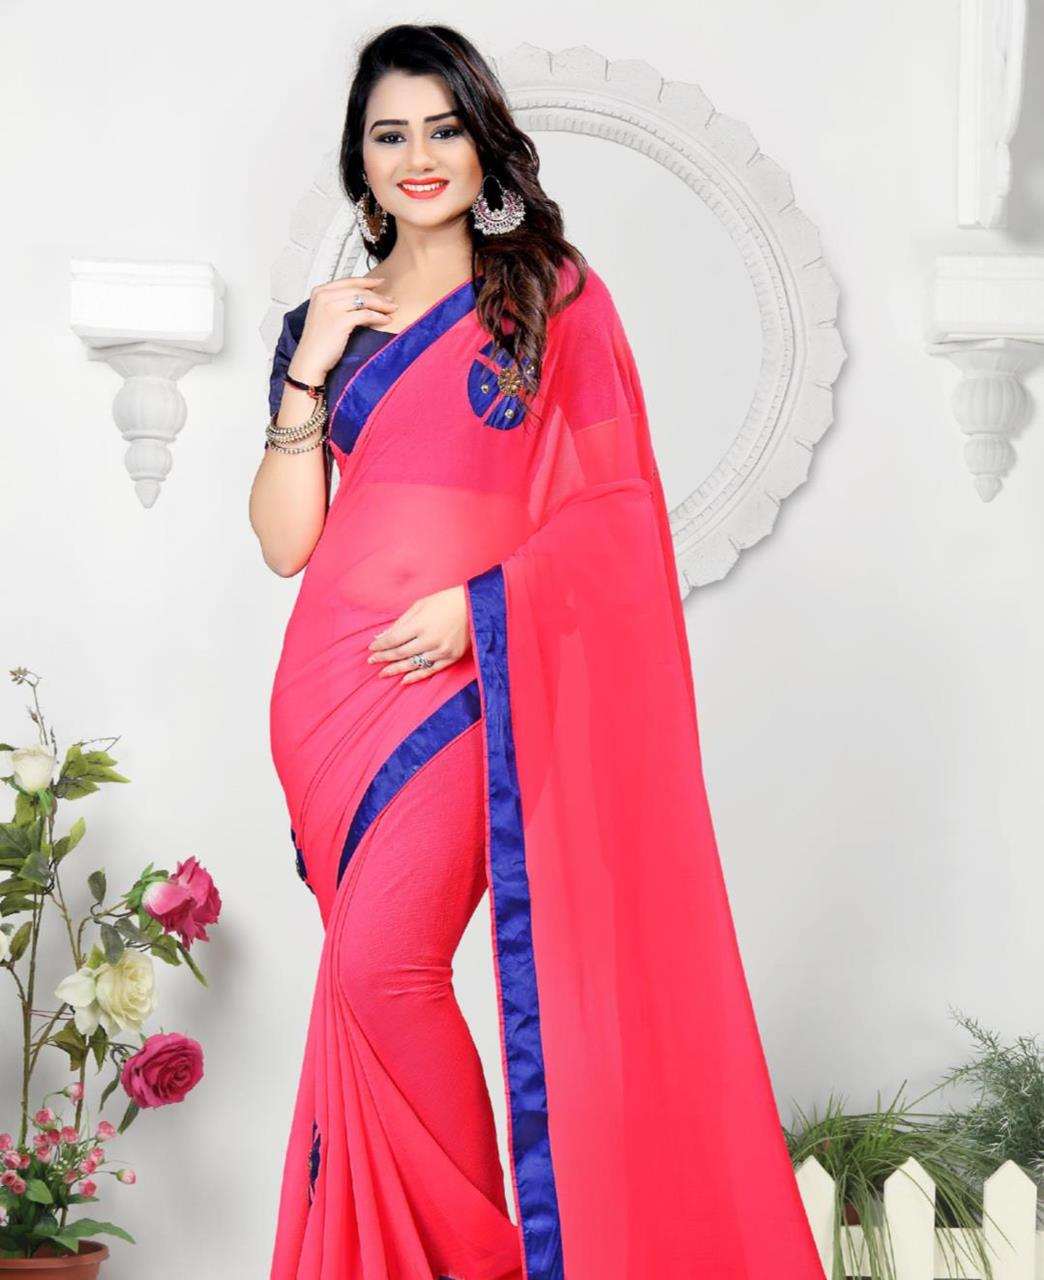 Lace Chiffon Saree (Sari) in Red